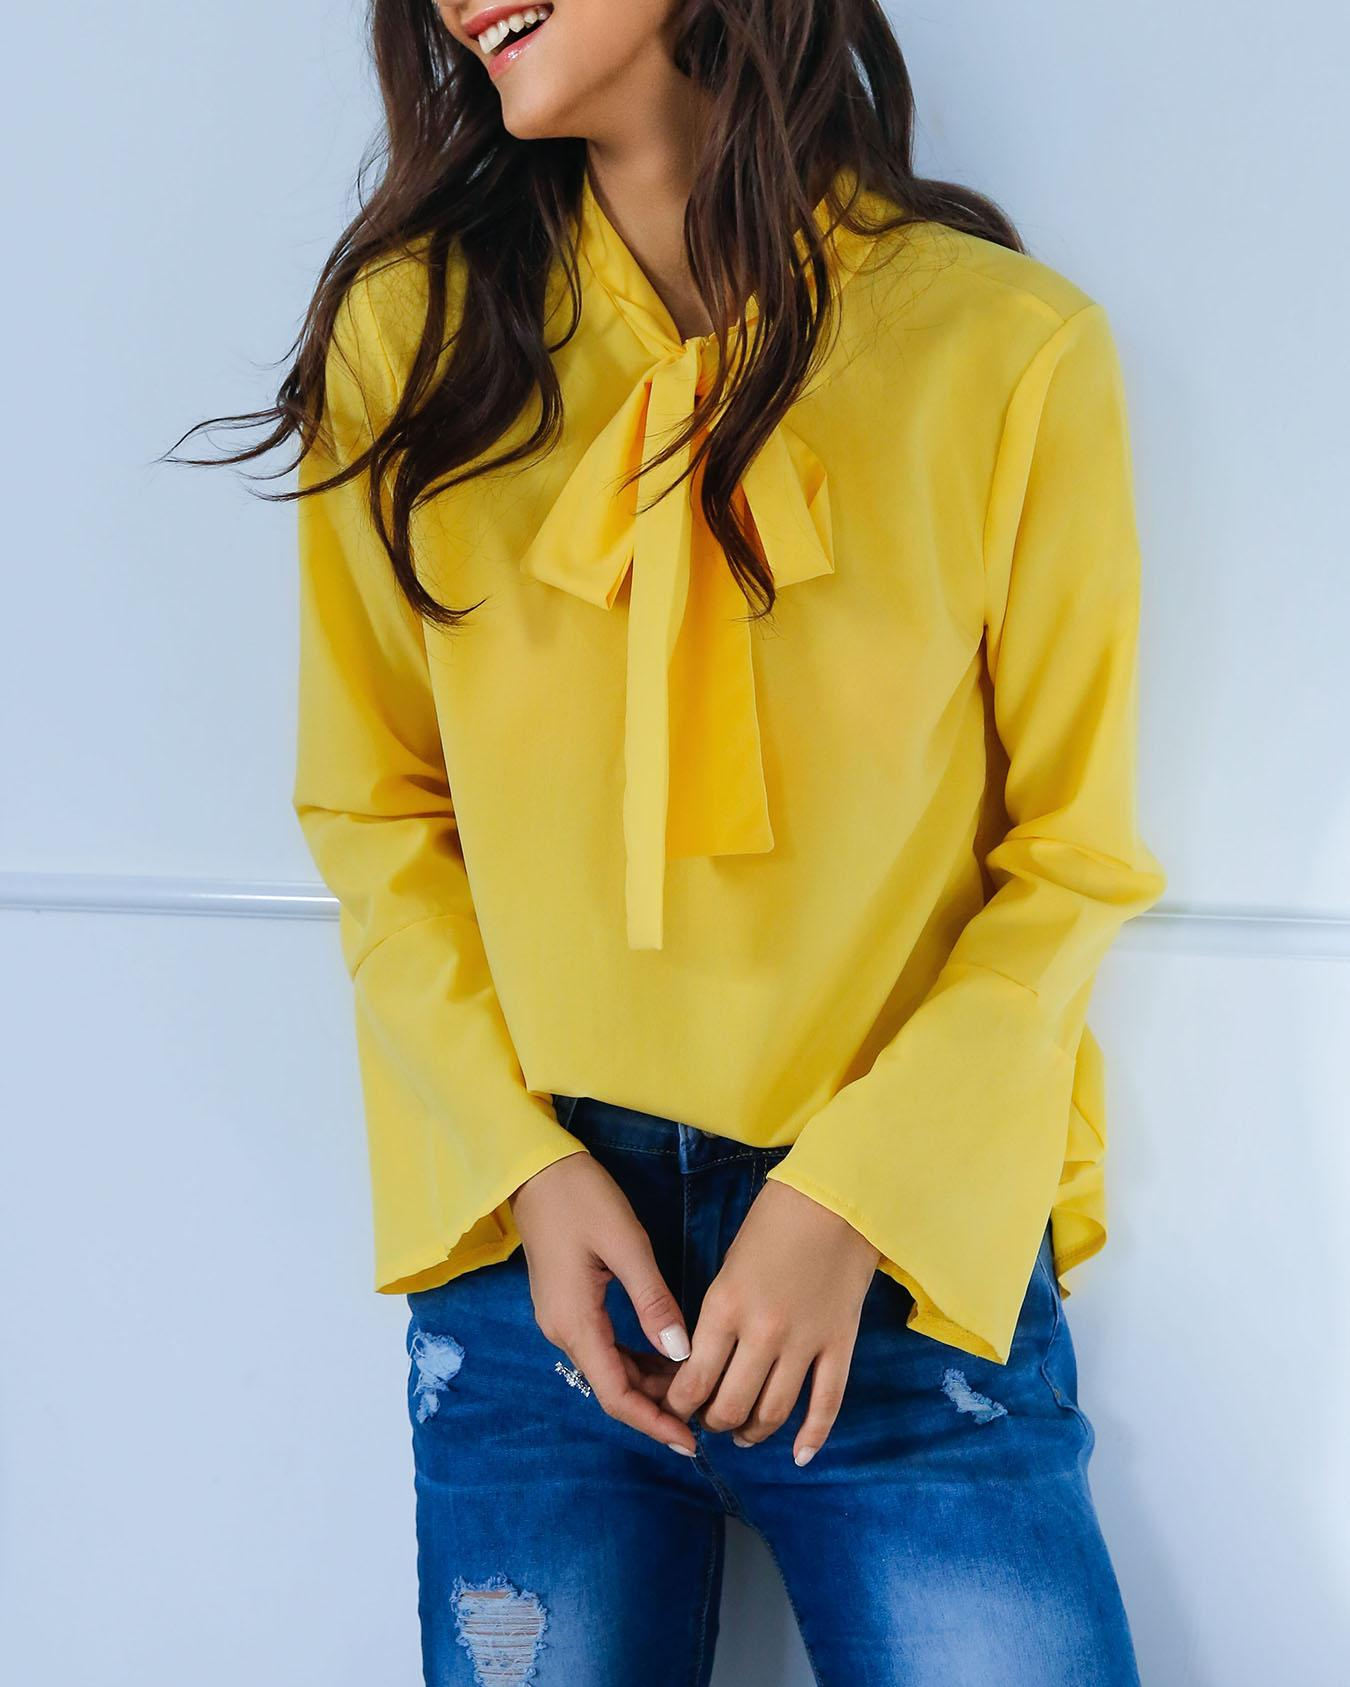 Ivrose coupon: Stylish Solid Tie Neck Flared Sleeve Blouse